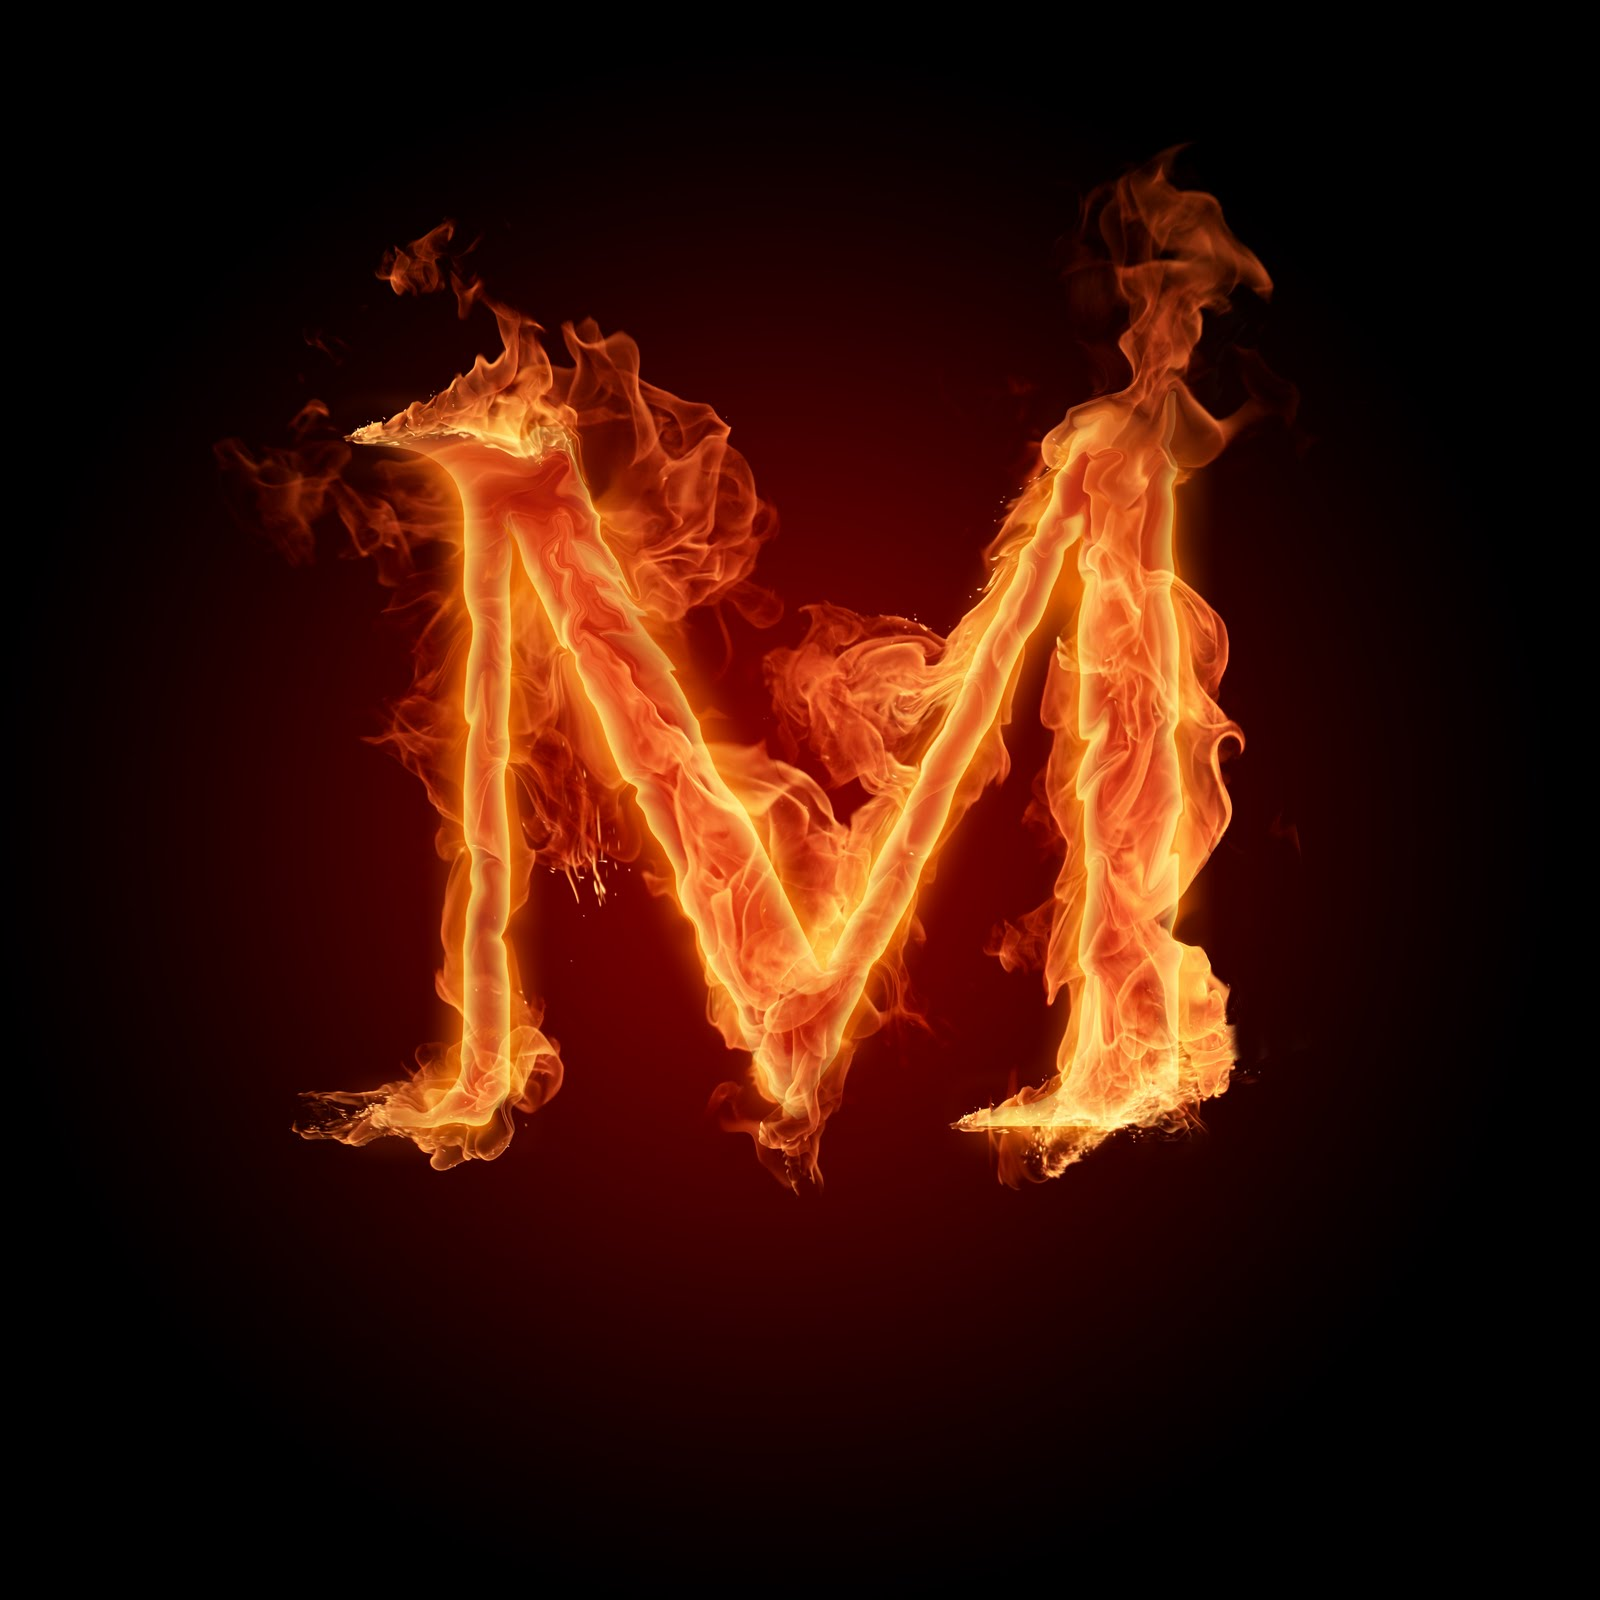 Images of y letter in fire spacehero coolbestpics fire letters and alphabets thecheapjerseys Images